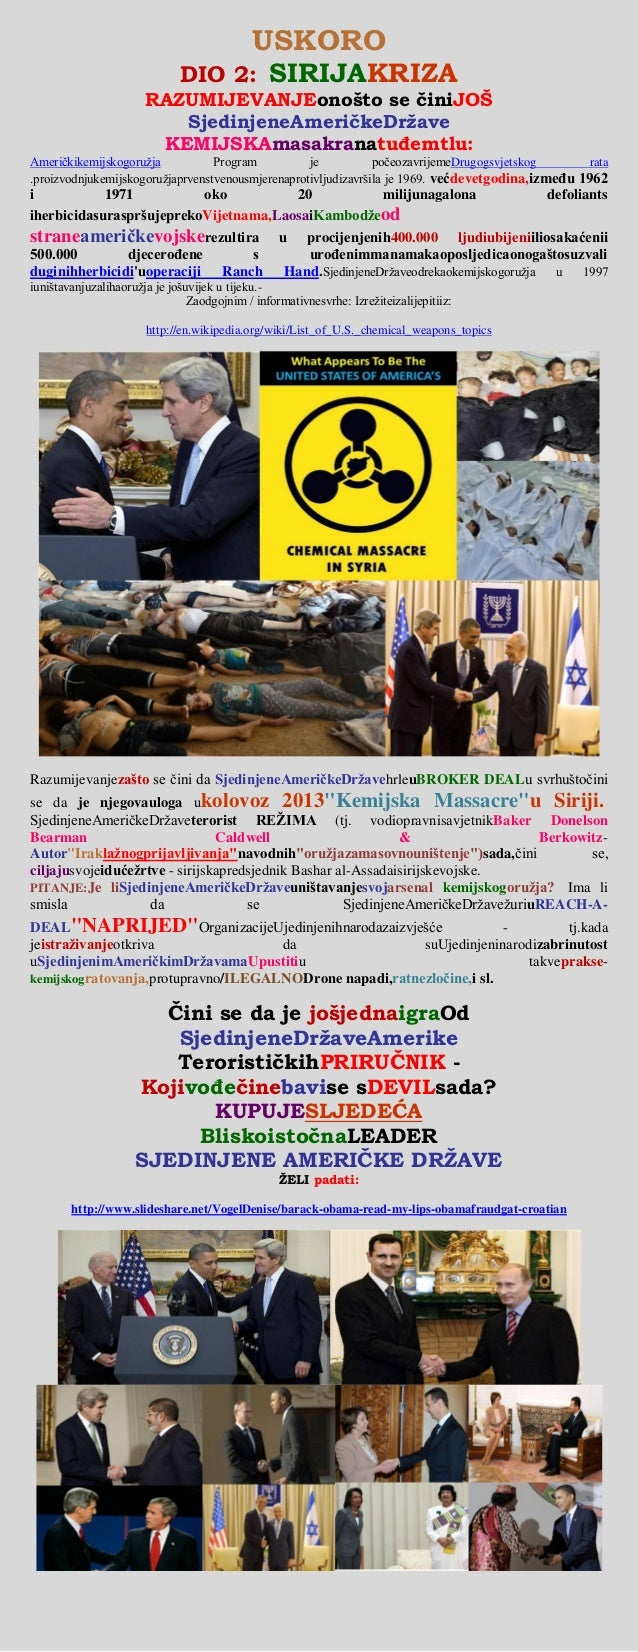 Syria crisis   (united states of america) chemical weapons attack (croatian)